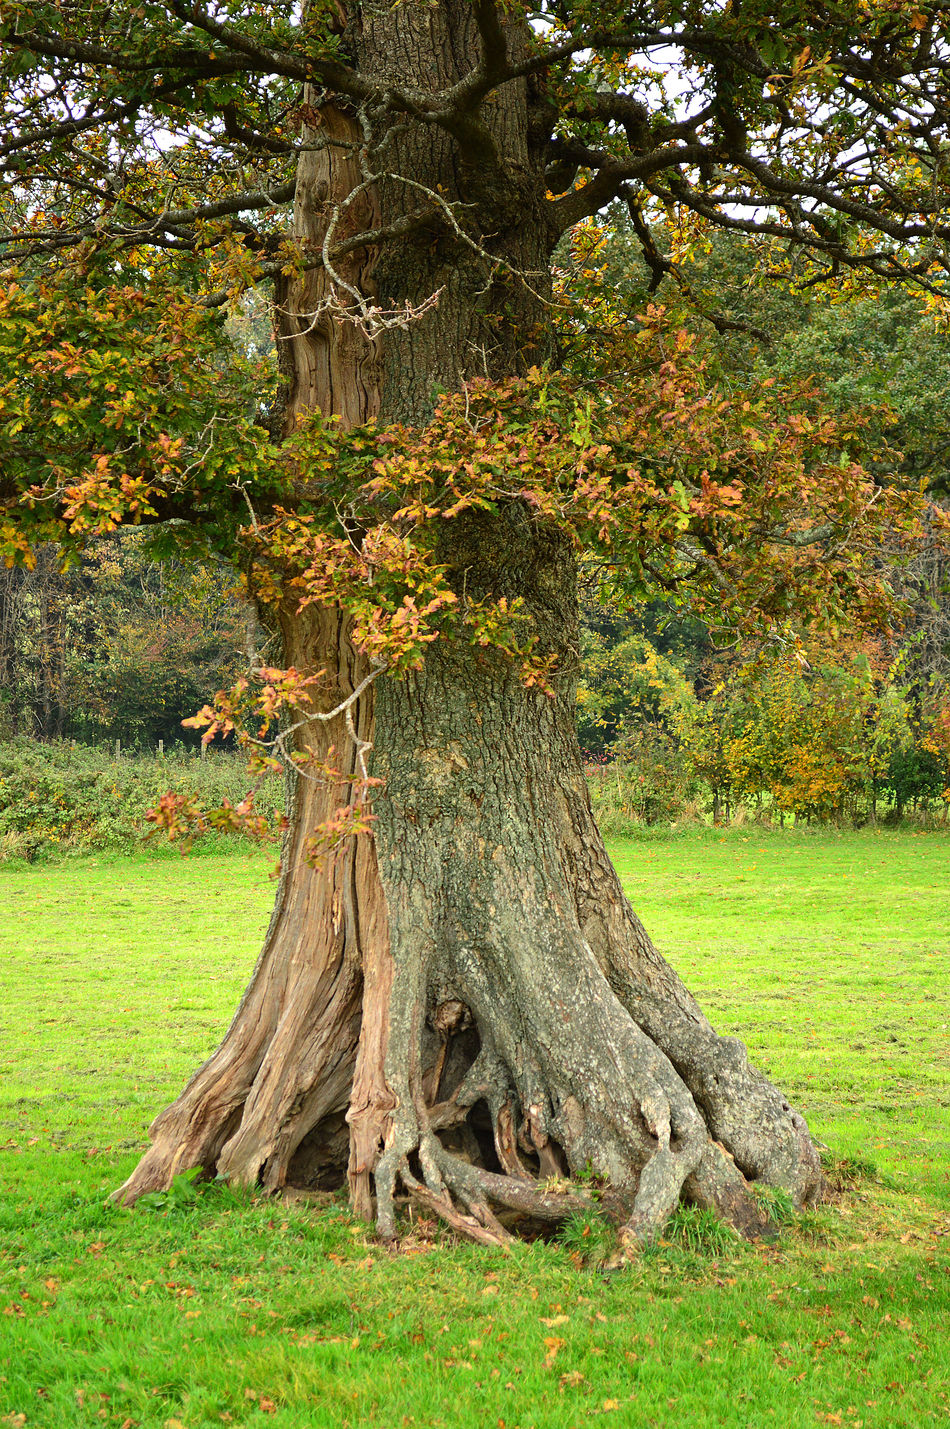 Beauty In Nature Devon England English Oak Filham Park FilhaMeuAmorMaior💞 Grass Green Color Growth Ivybridge Knarled Roots Landscape Nature No People Oak Oak Tree Outdoors South Hams Sunlight Tree Tree Trunk